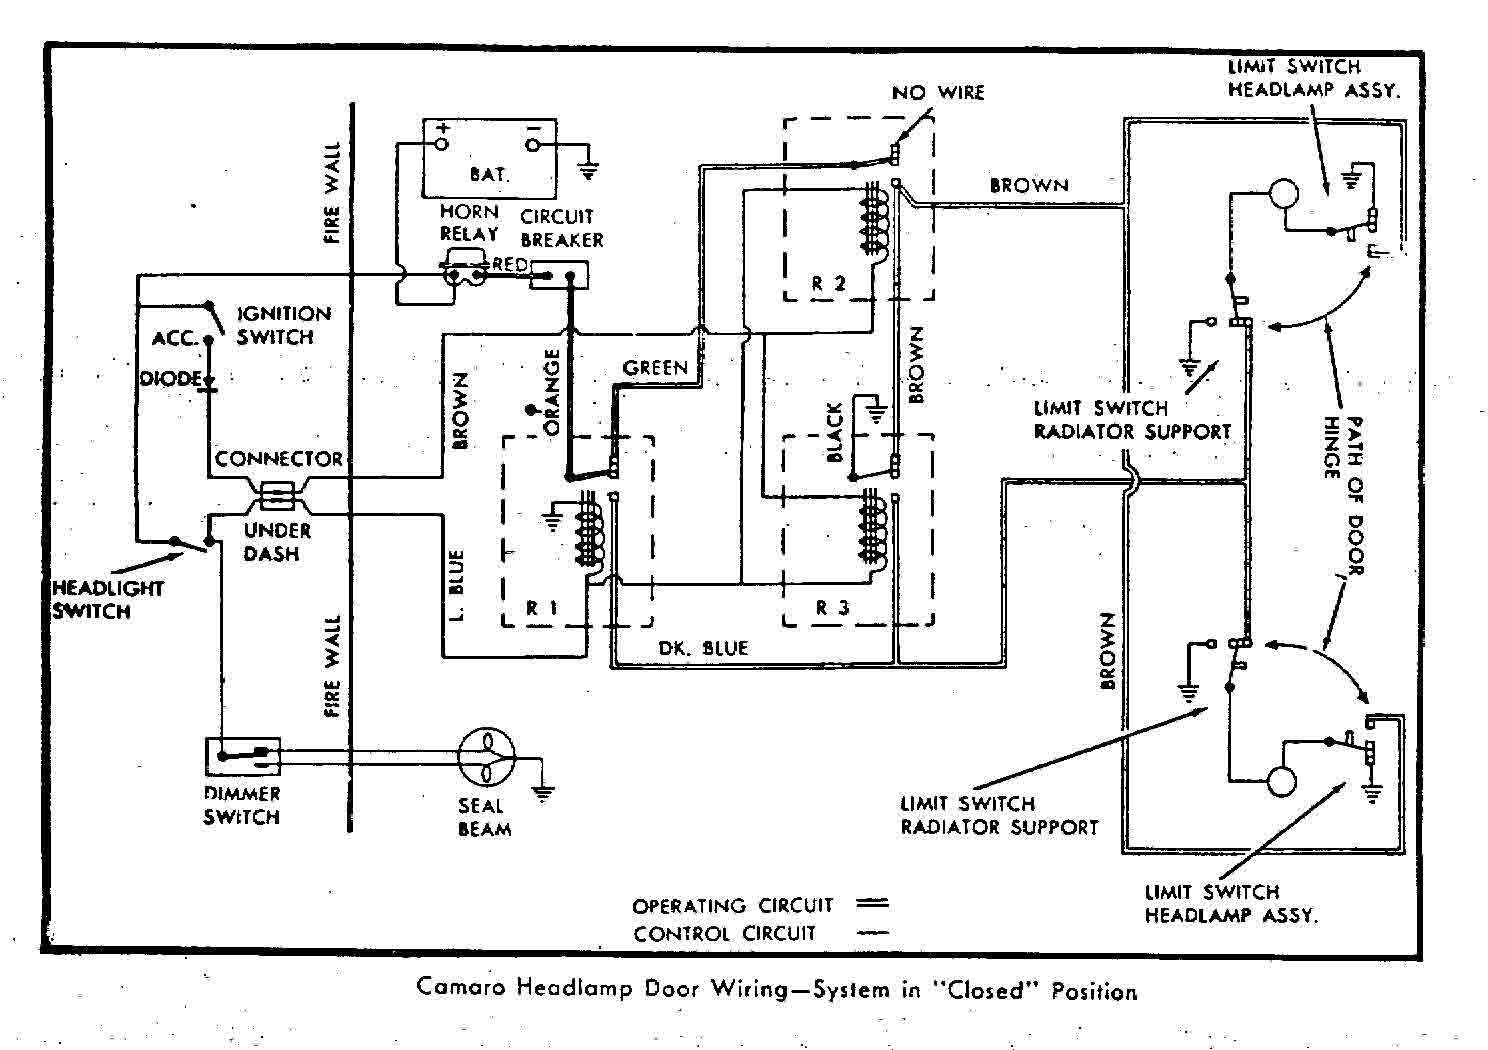 1967 Camaro American Autowire Headlight Wiring Diagram Trusted 1969 Datsun 1600 67 Rs Doors Rh Pozziracing Com Assembly 1970